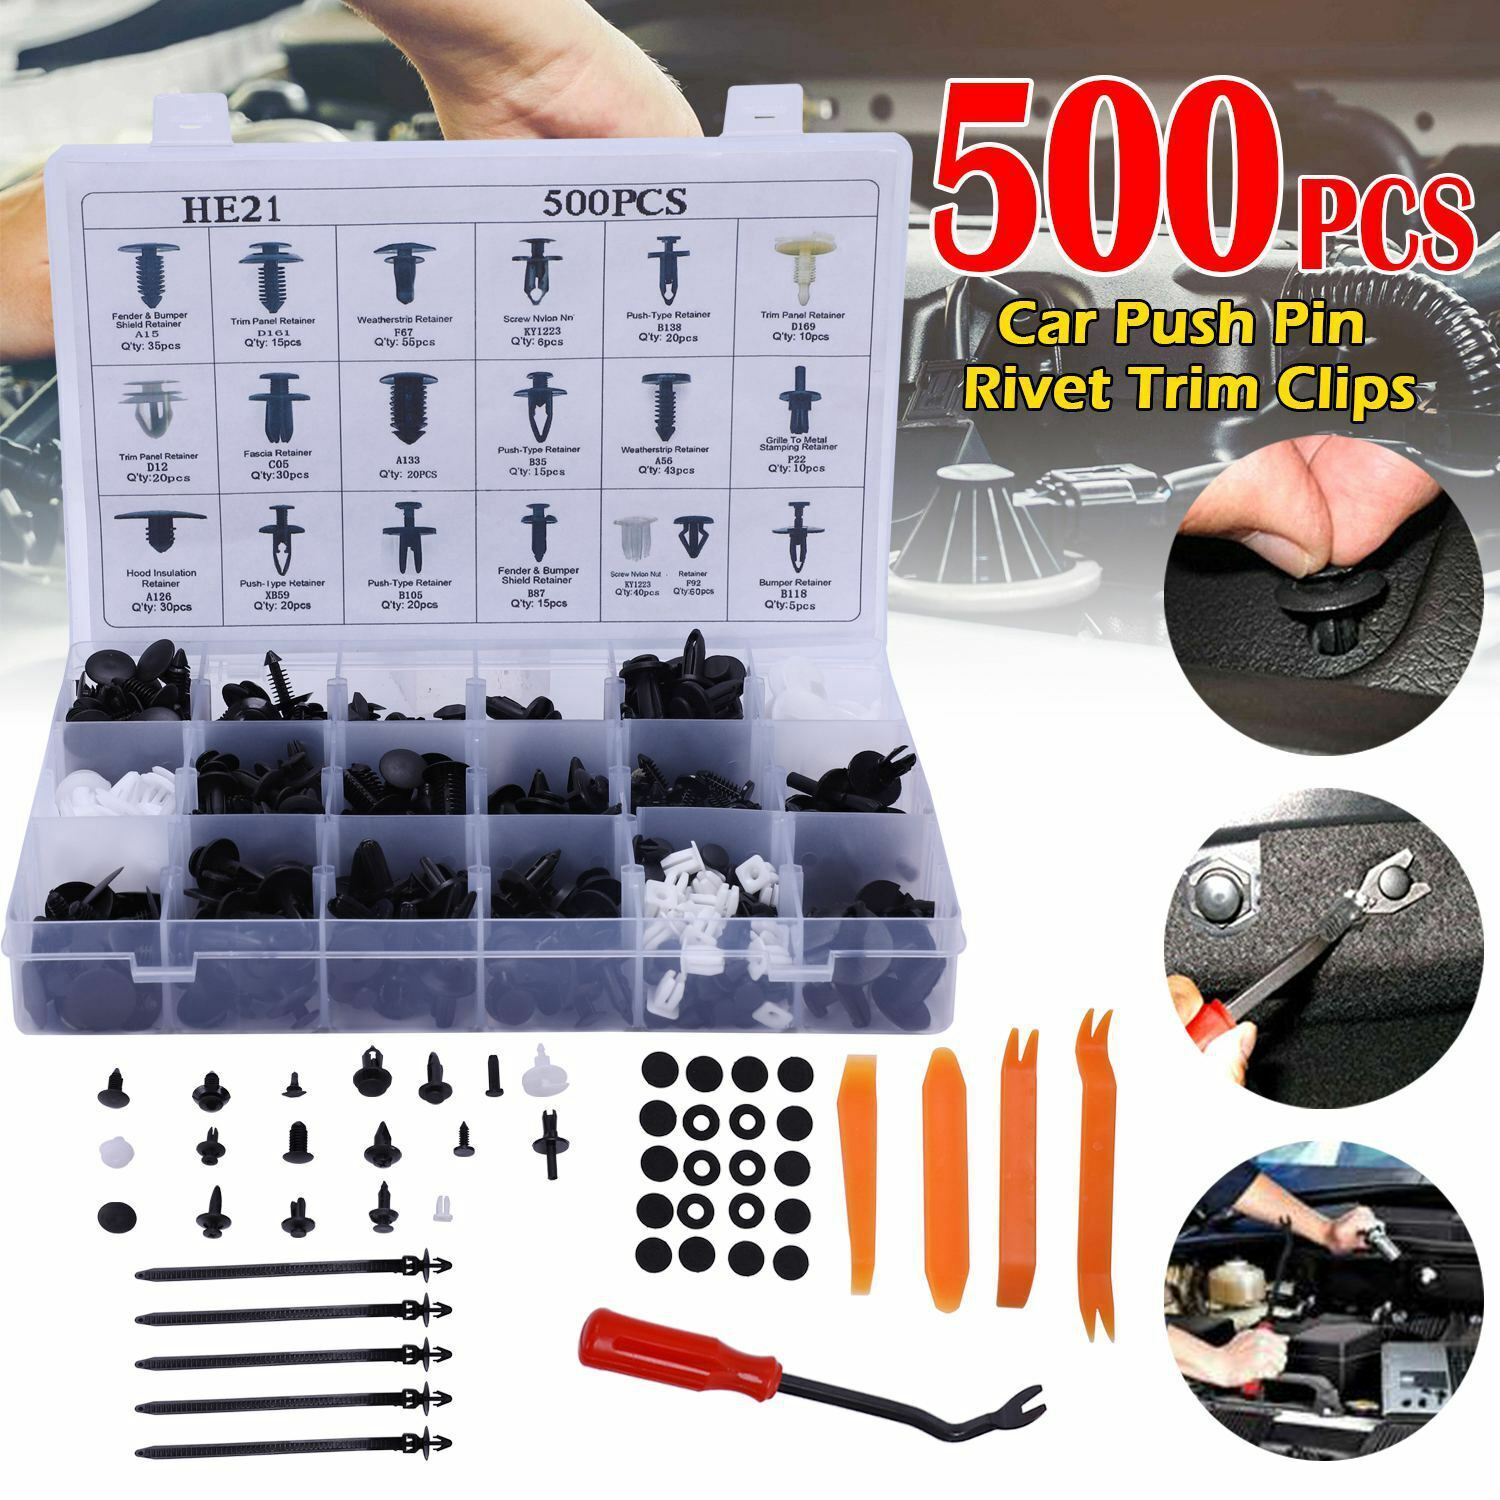 500X Plastic Car Push Pin Rivet Trim Clips Door Panel Fasteners Assortment Set